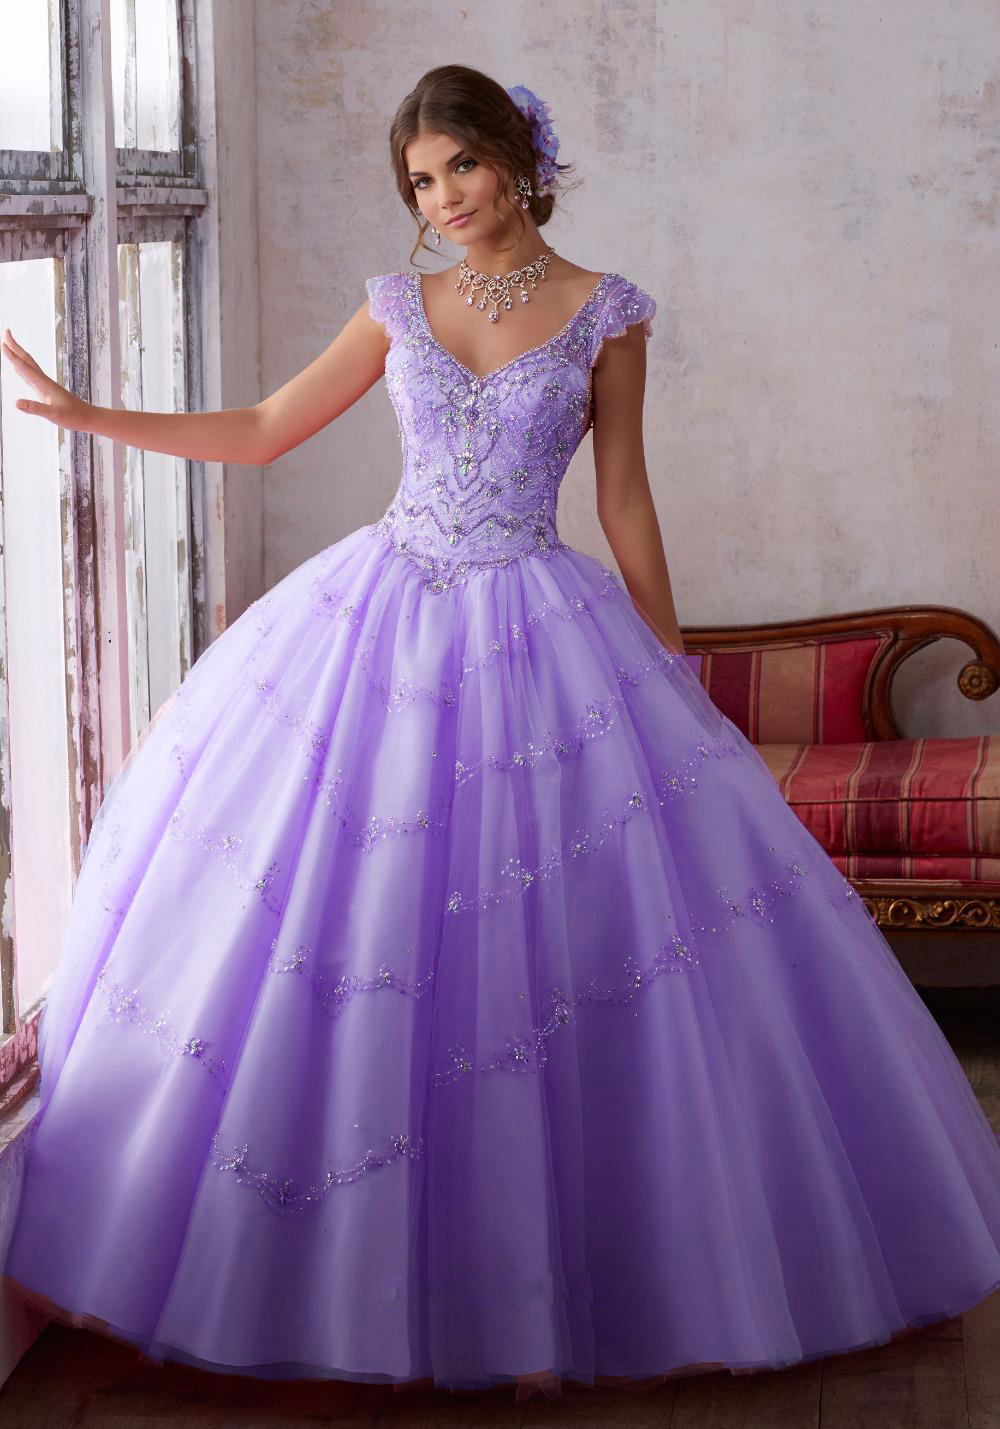 f350b71f884 Sweetheart Aqua Ball Gown Lace Ball Gown Pink Purple Quinceanera Dress 2017  Beaded Organza Sweet 16 Dresses Vestidos De 15-in Quinceanera Dresses from  ...